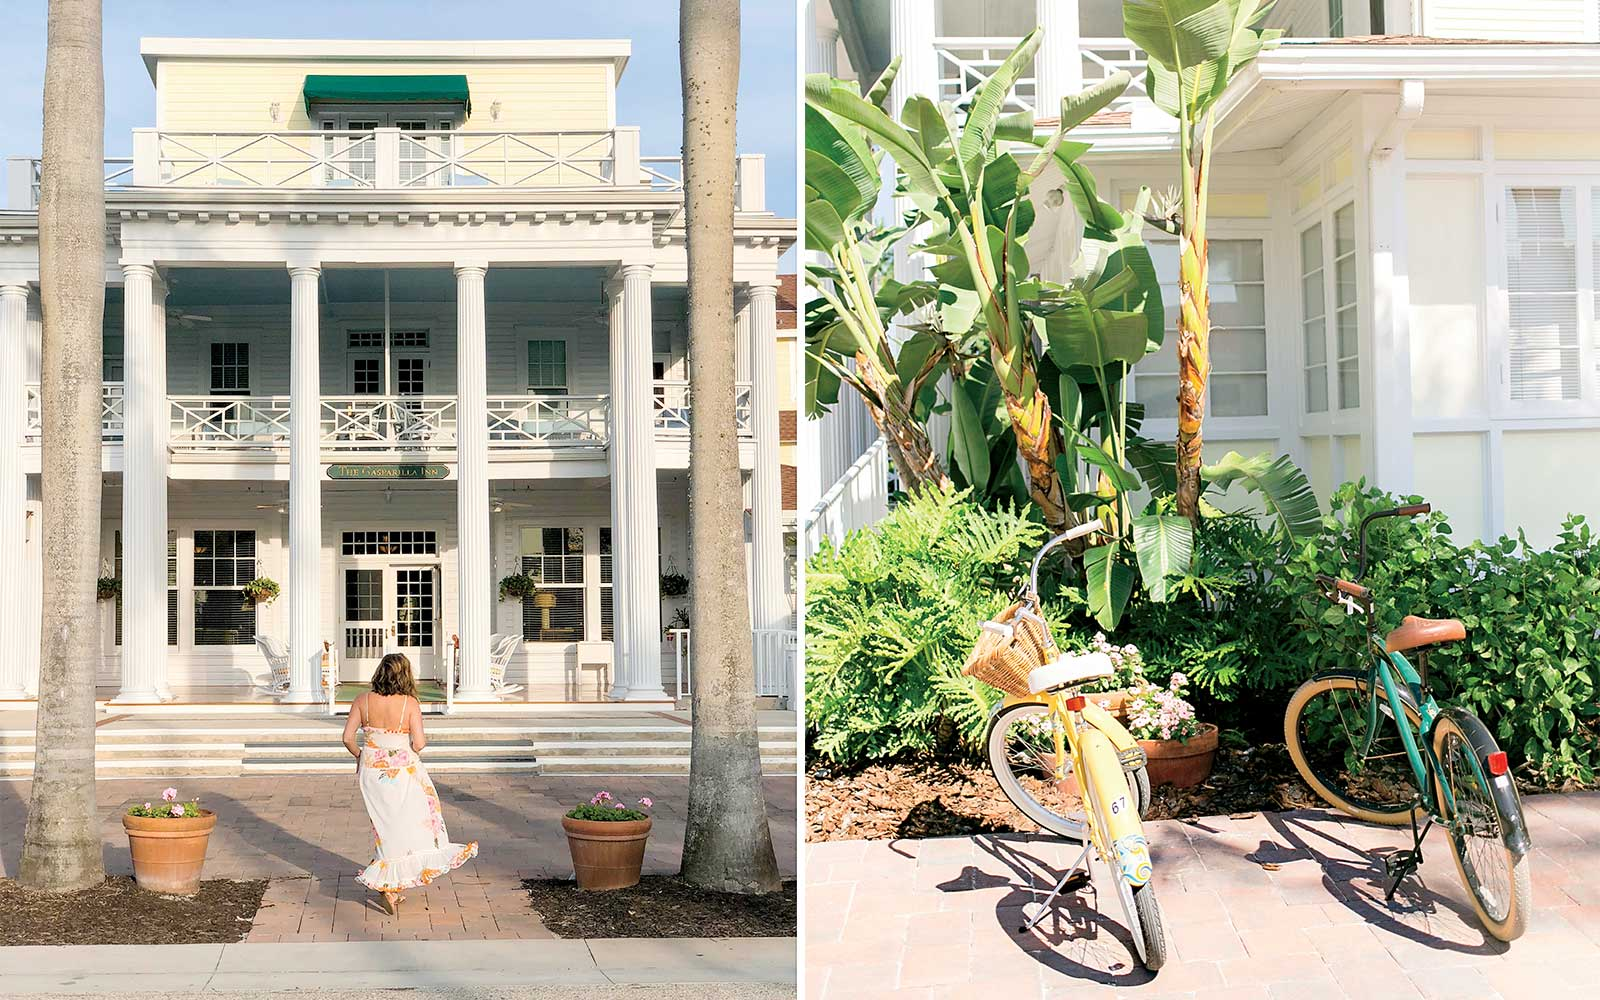 What It's Like to Stay at the Gasparilla Inn & Club, the Most Exclusive Club in Florida